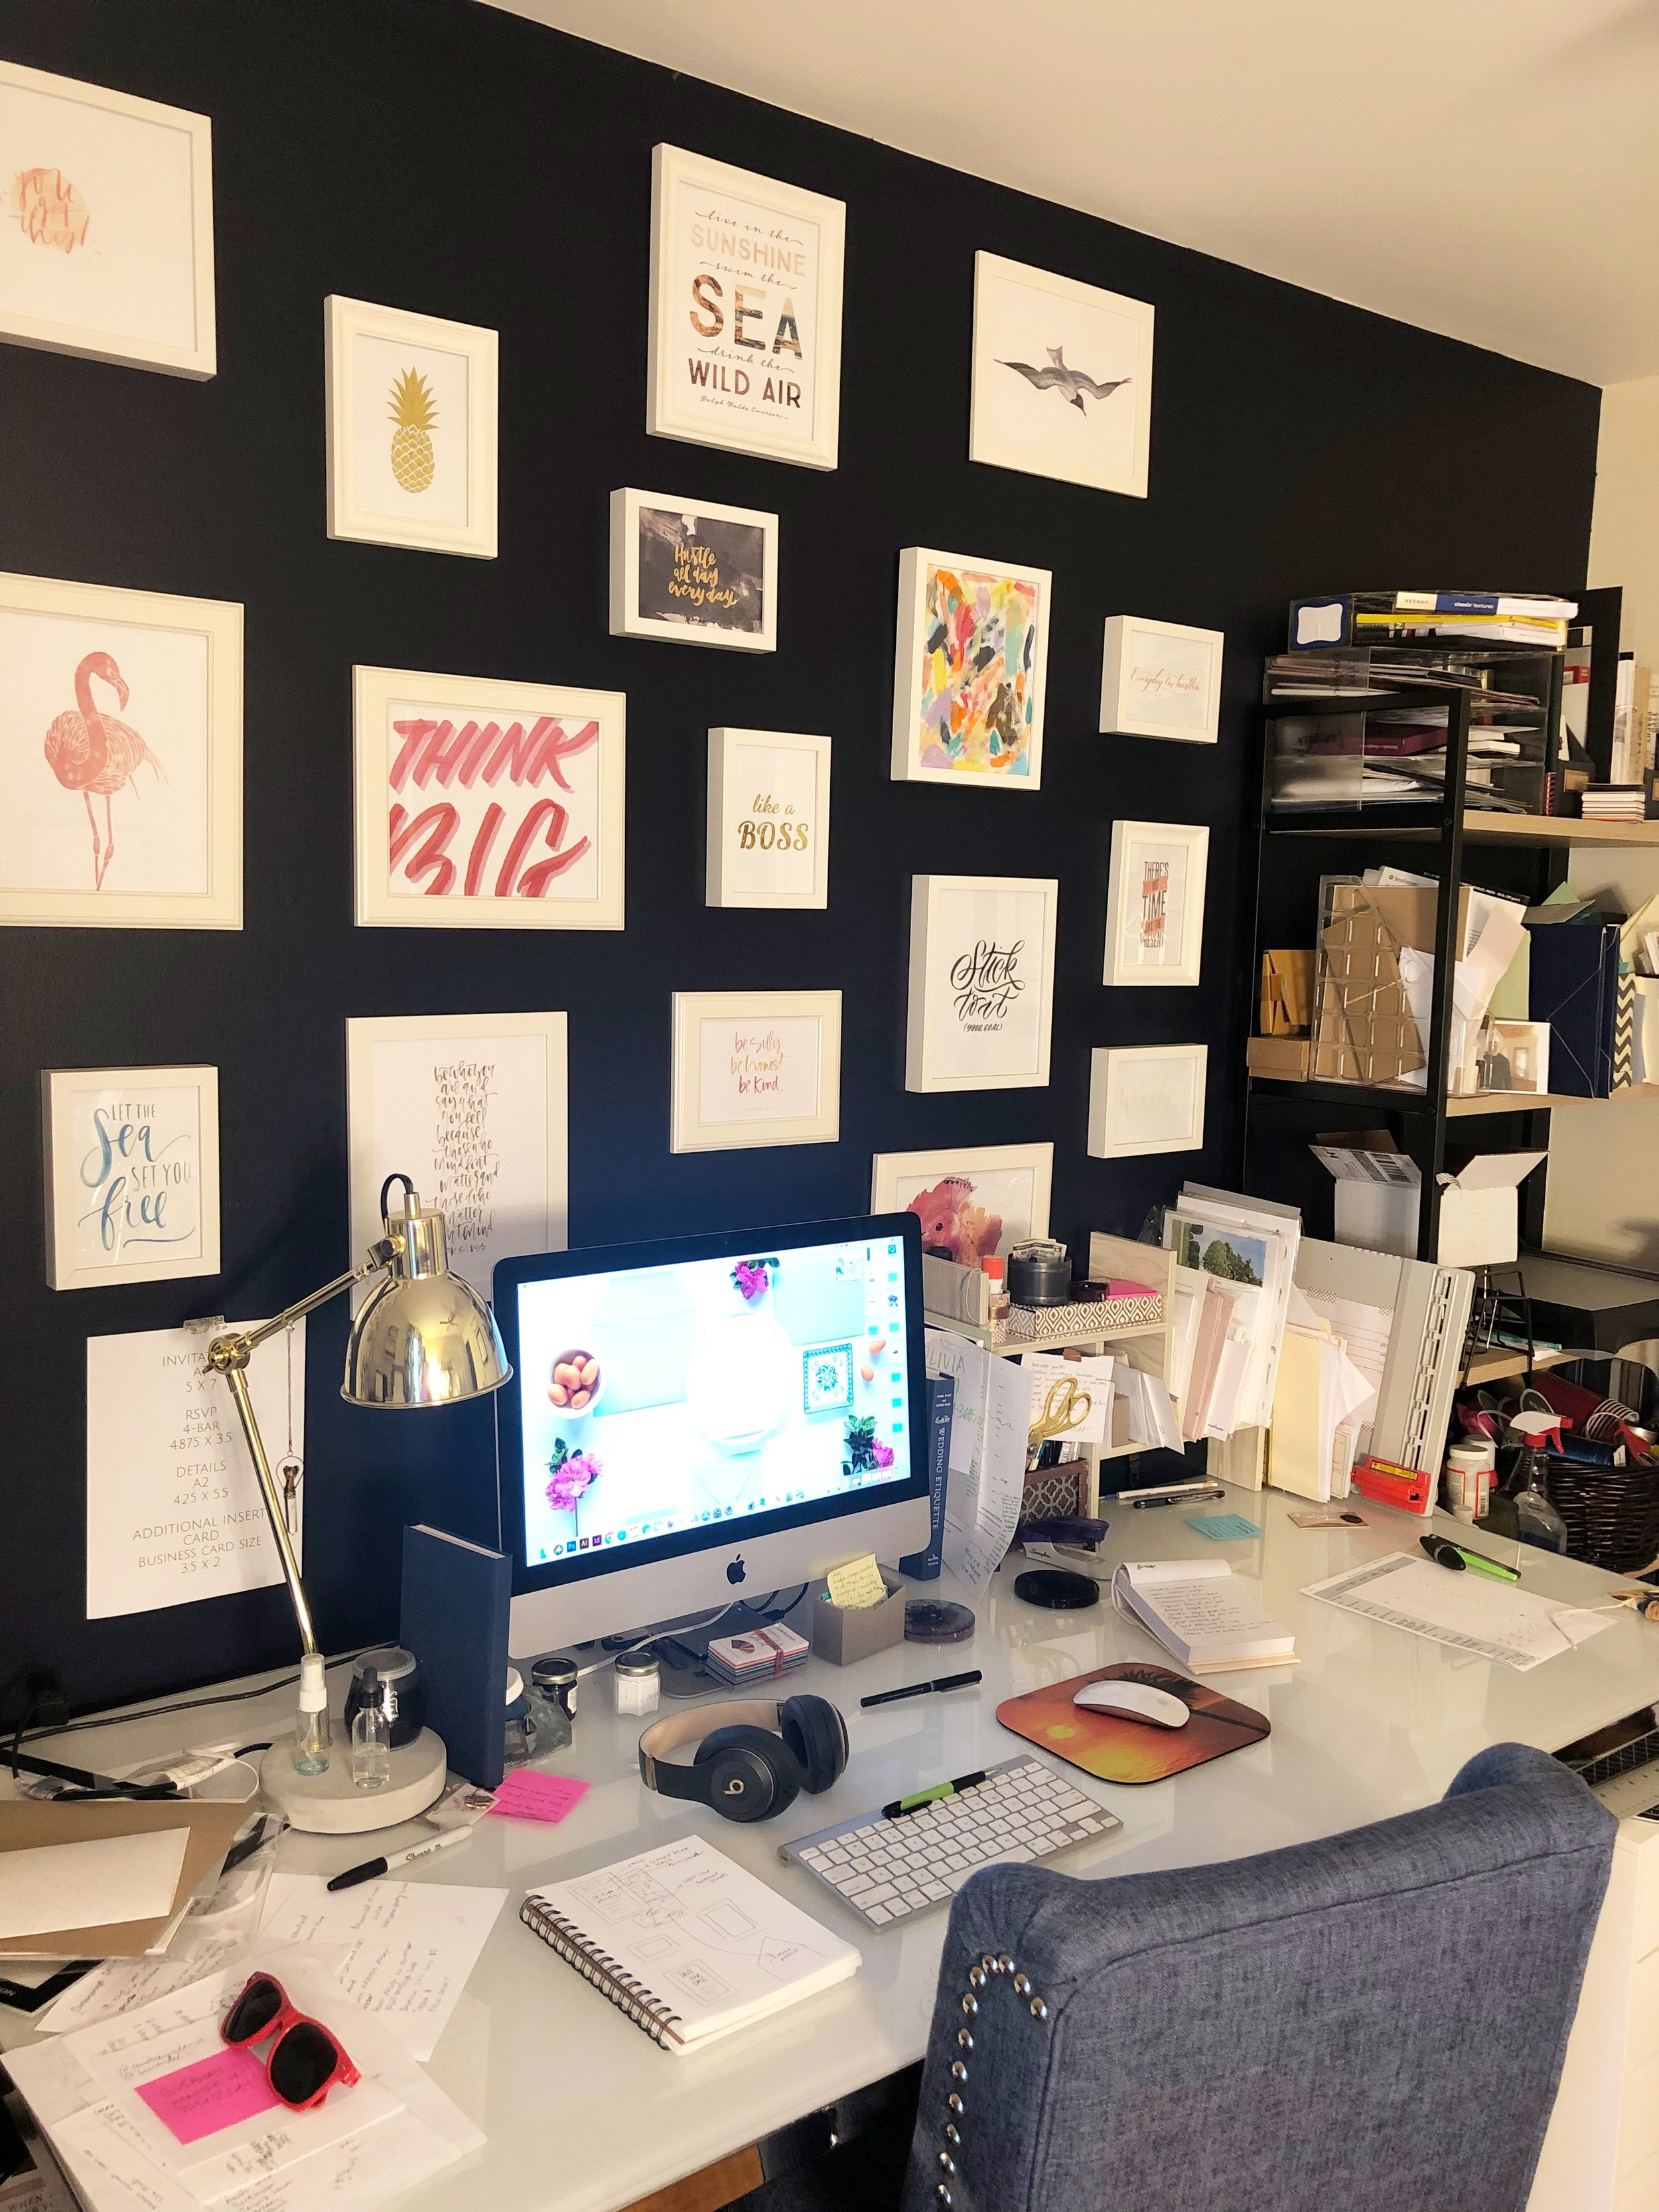 A glimpse into my messy (but productive) office!